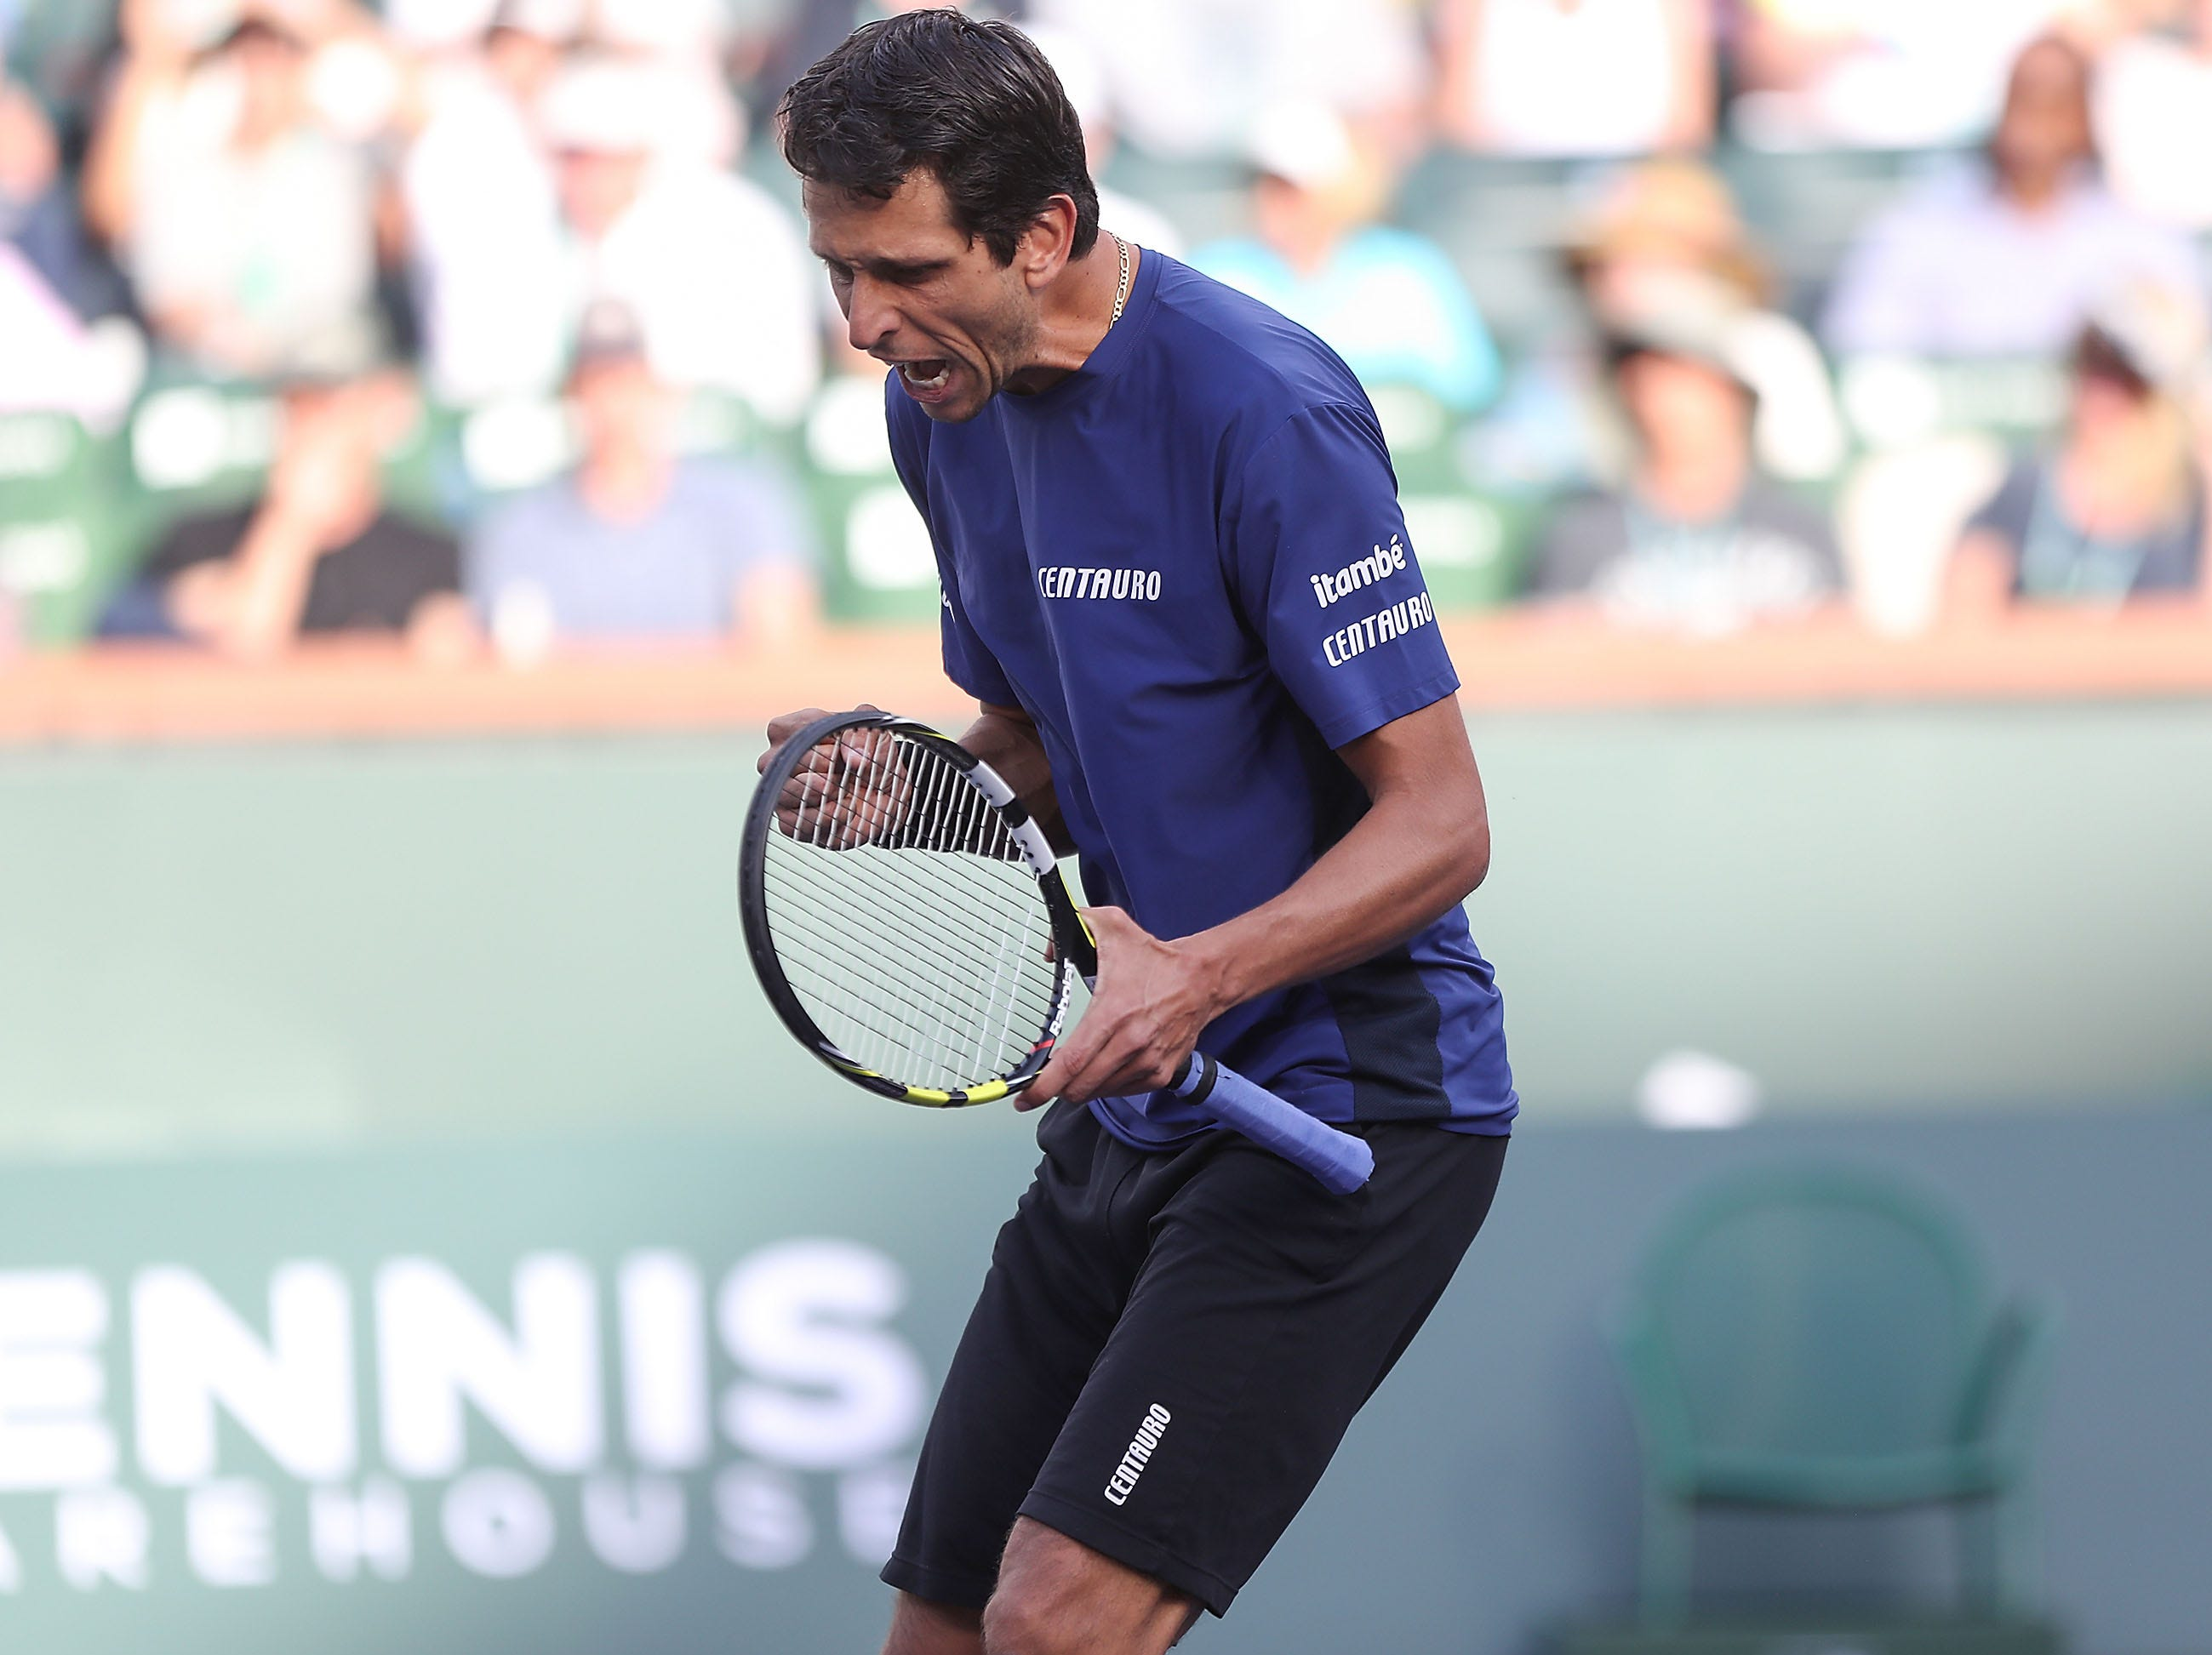 Marcelo Melo celebrates a point win during the doubles semifinal match at the BNP Paribas Open in Indian Wells, March 15, 2019.